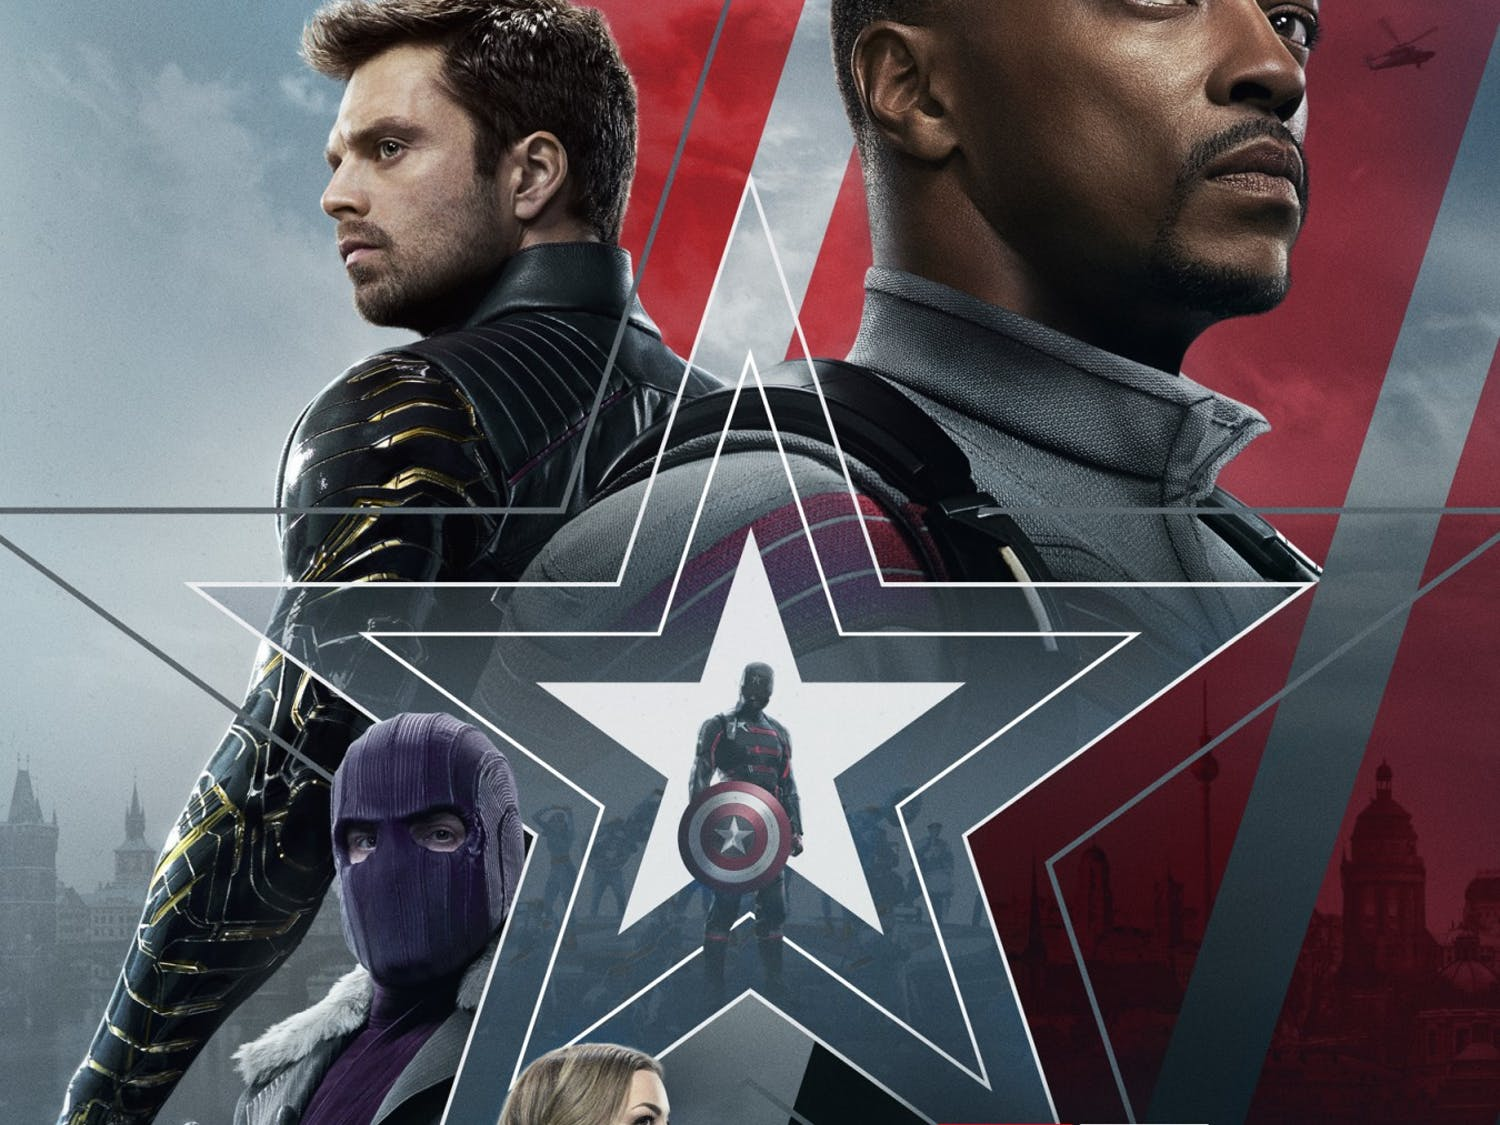 """With the season finale airing last Friday, """"The Falcon and the Winter Soldier,"""" Marvel's second Disney+ original series, represents a significant improvement over the previous series, """"Wandavision,"""" which was bogged down by long, monotonous scenes that felt more like novelty than substance."""